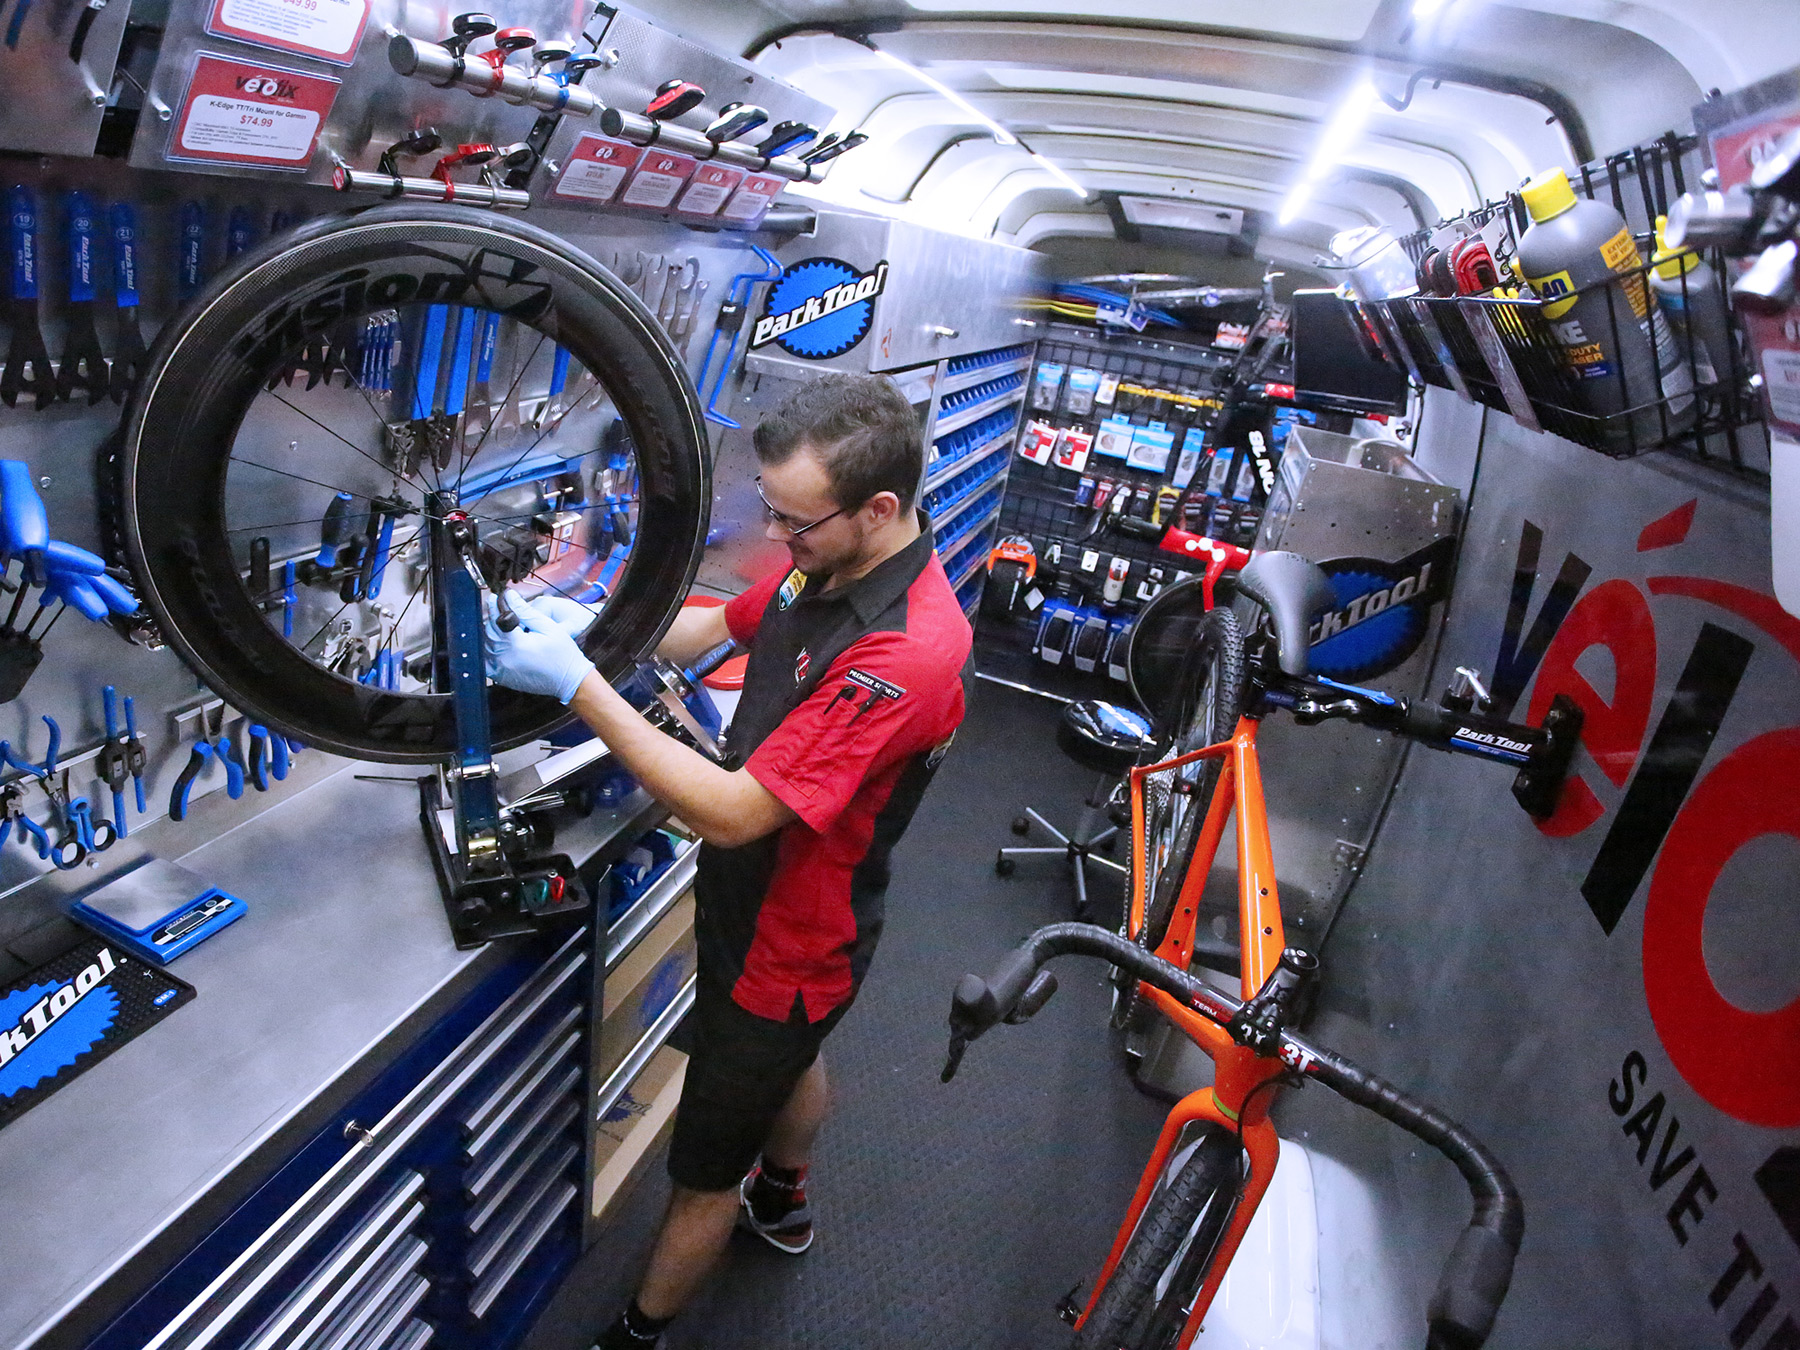 Velofix S Mobile Repair Service Will Now Deliver A New